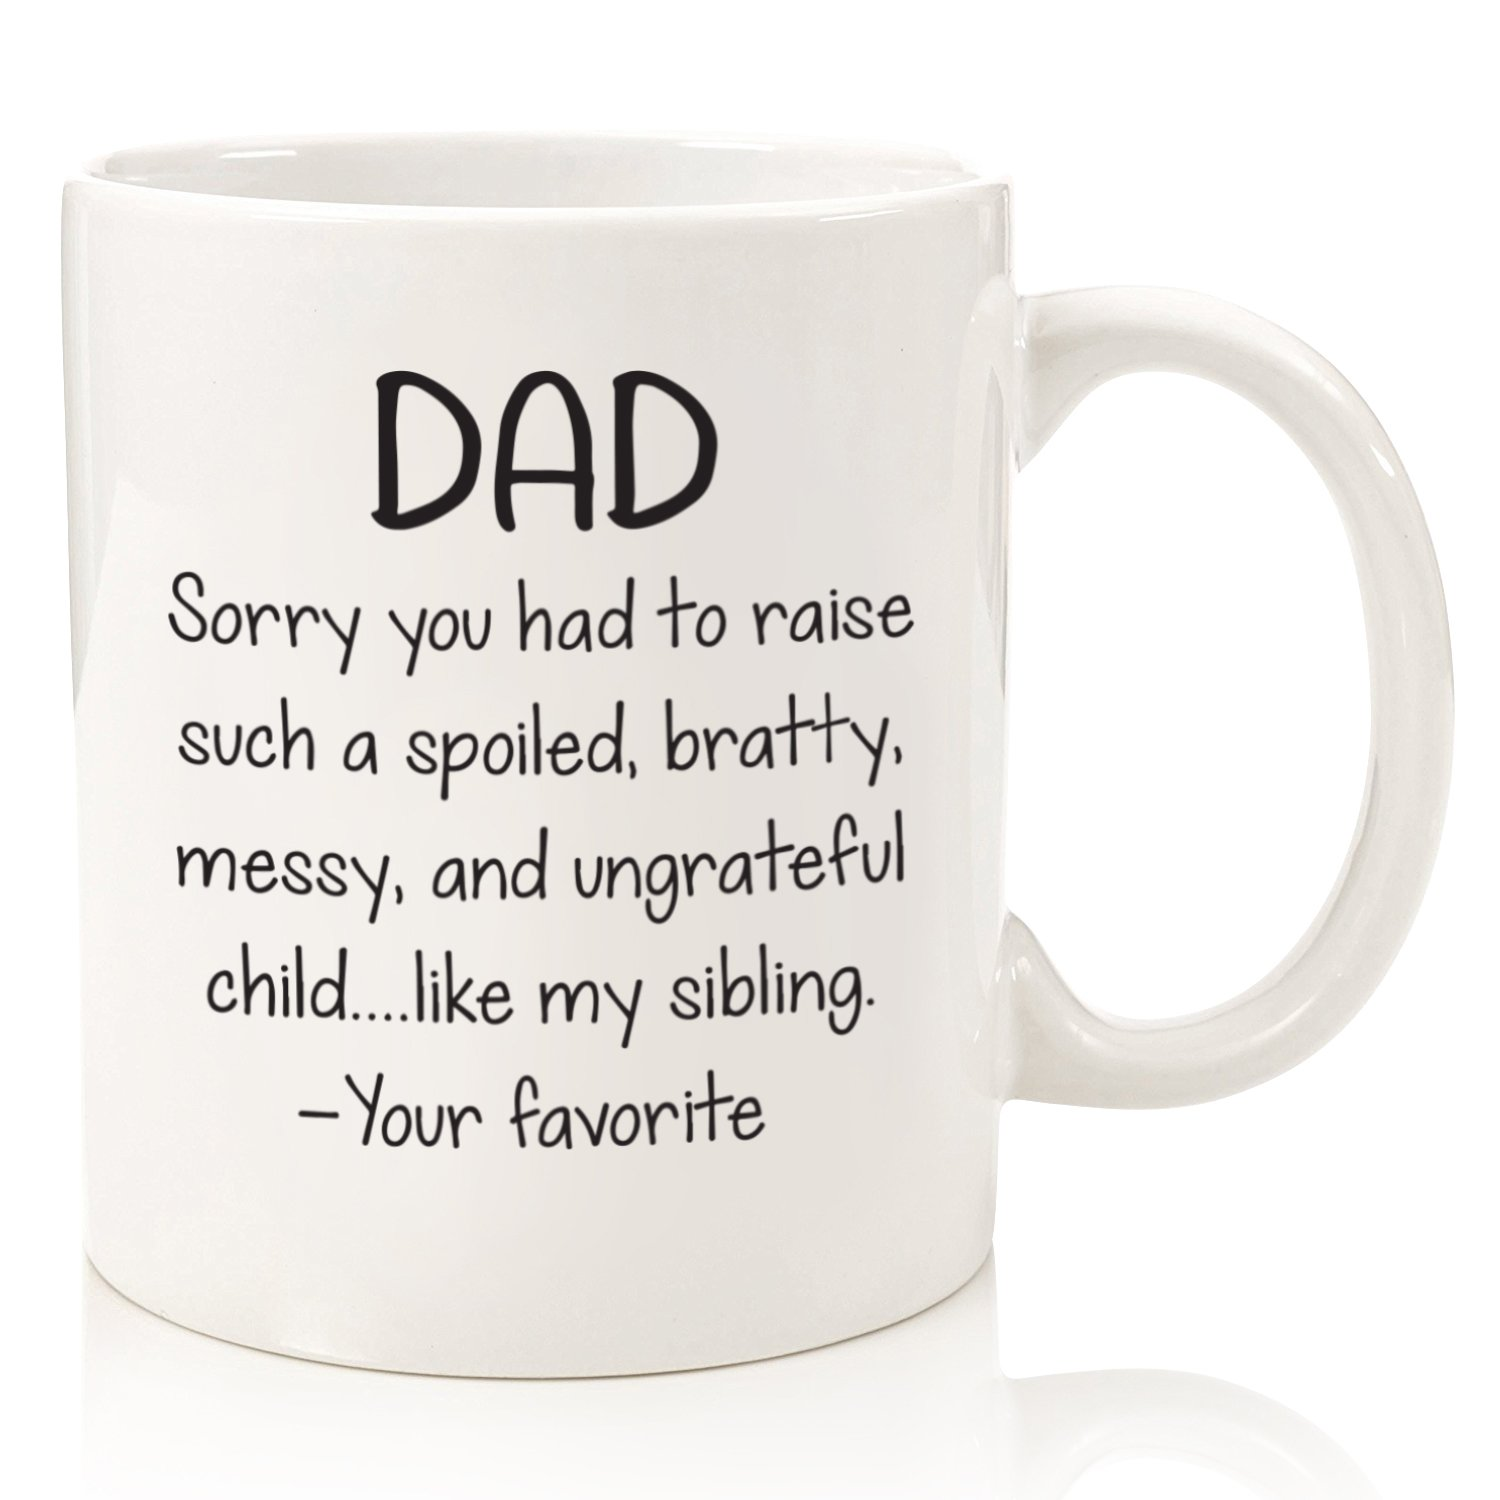 Spoiled Sibling Funny Coffee Mug - Best Dad Gifts - Unique Gag Fathers Day Gift For Him From Daughter, Son, Favorite Child - Cool Birthday Present Idea For Men, Guys, Father - Fun Novelty Cup - 11 oz